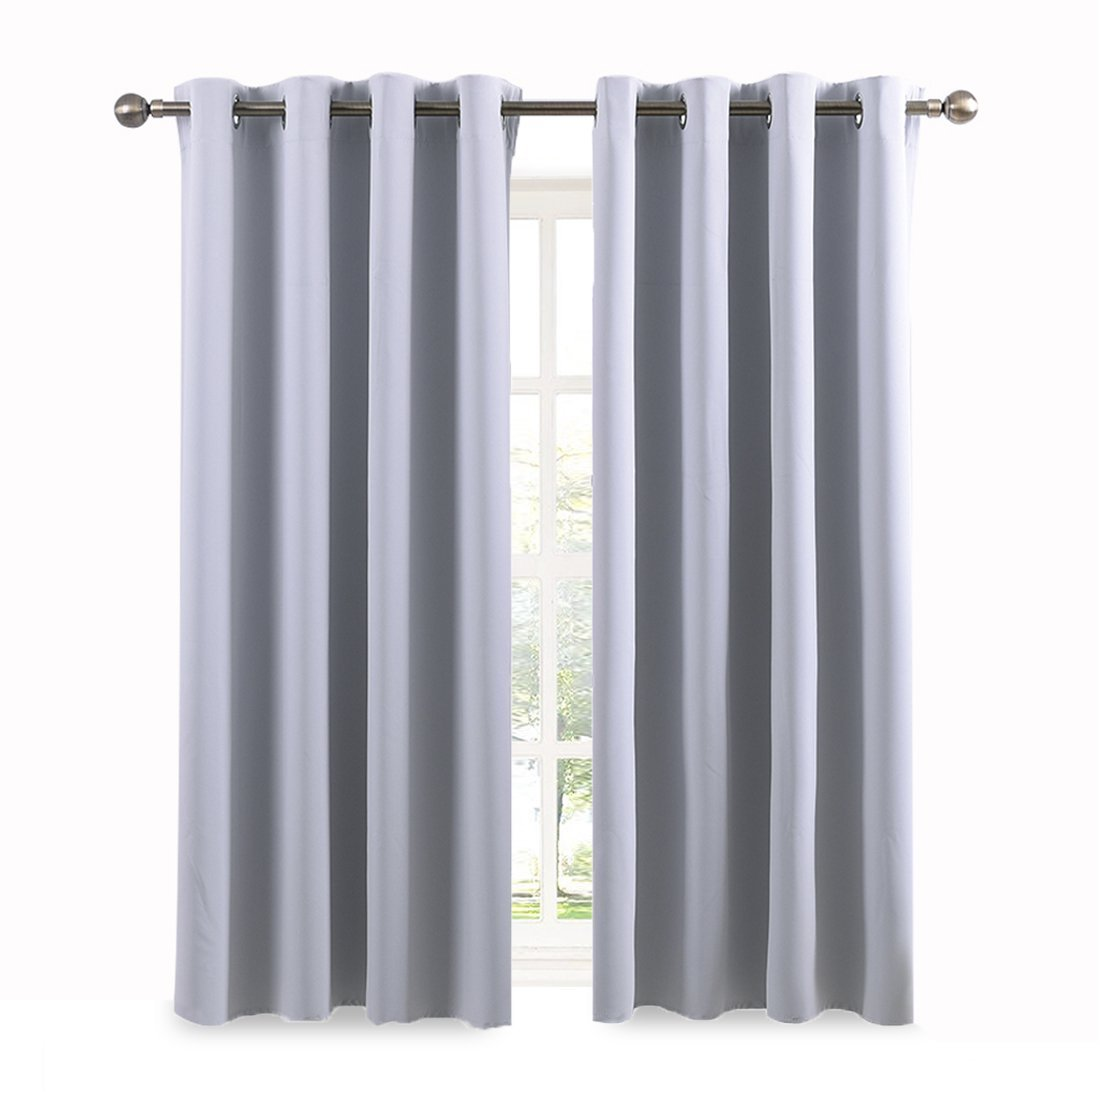 Pony Dance 8 Grommet Top Thermal Insulated Blackout Window treatment Curtains & Drapes for Living Room-(Greyish White Color),52x63 Inch each panel,2 Panels